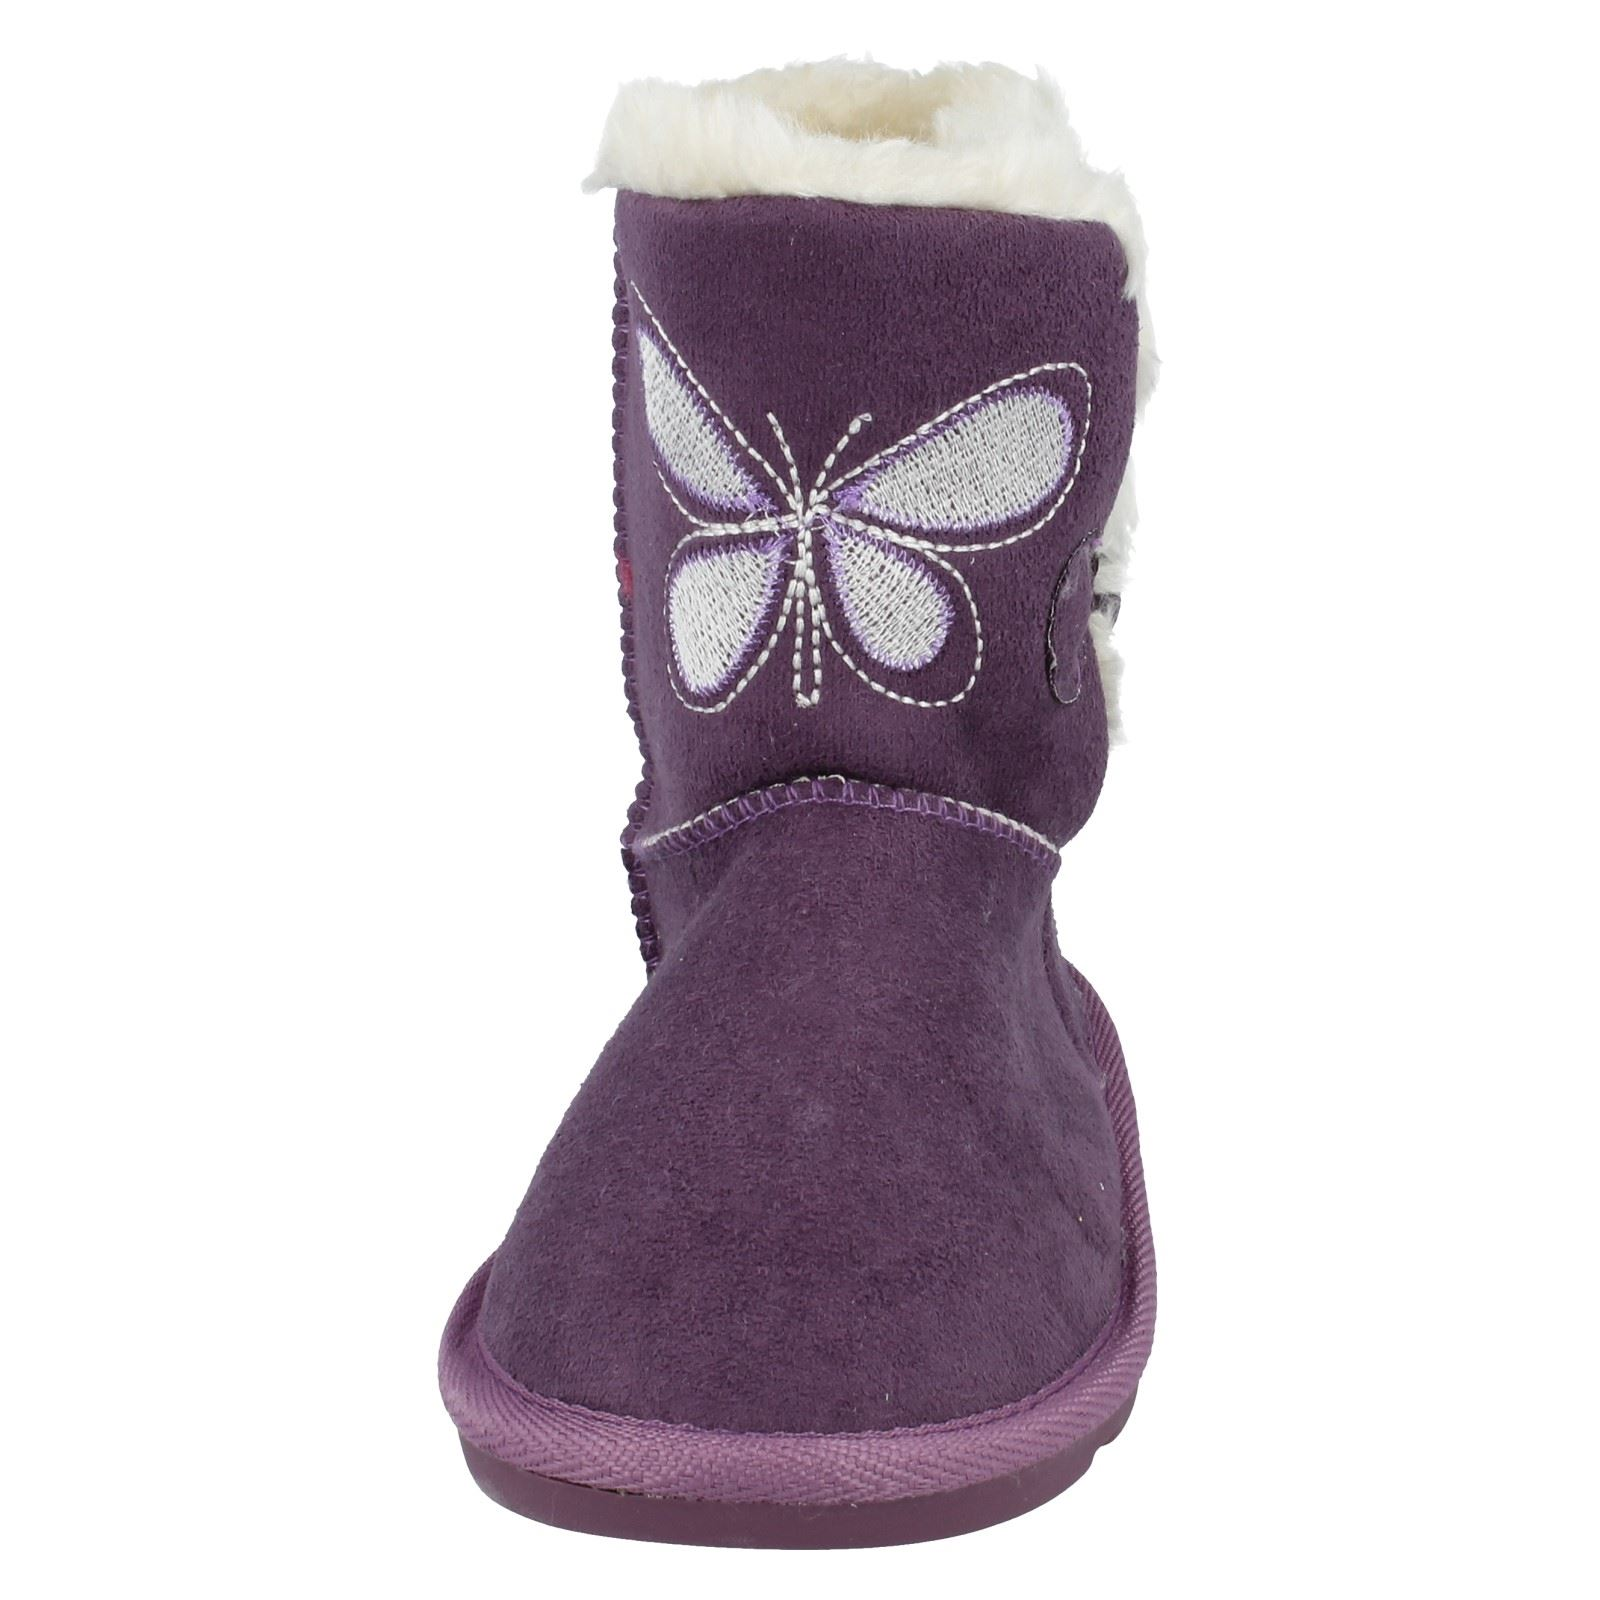 Girls Spot Boots With Butterfly Pattern H4099